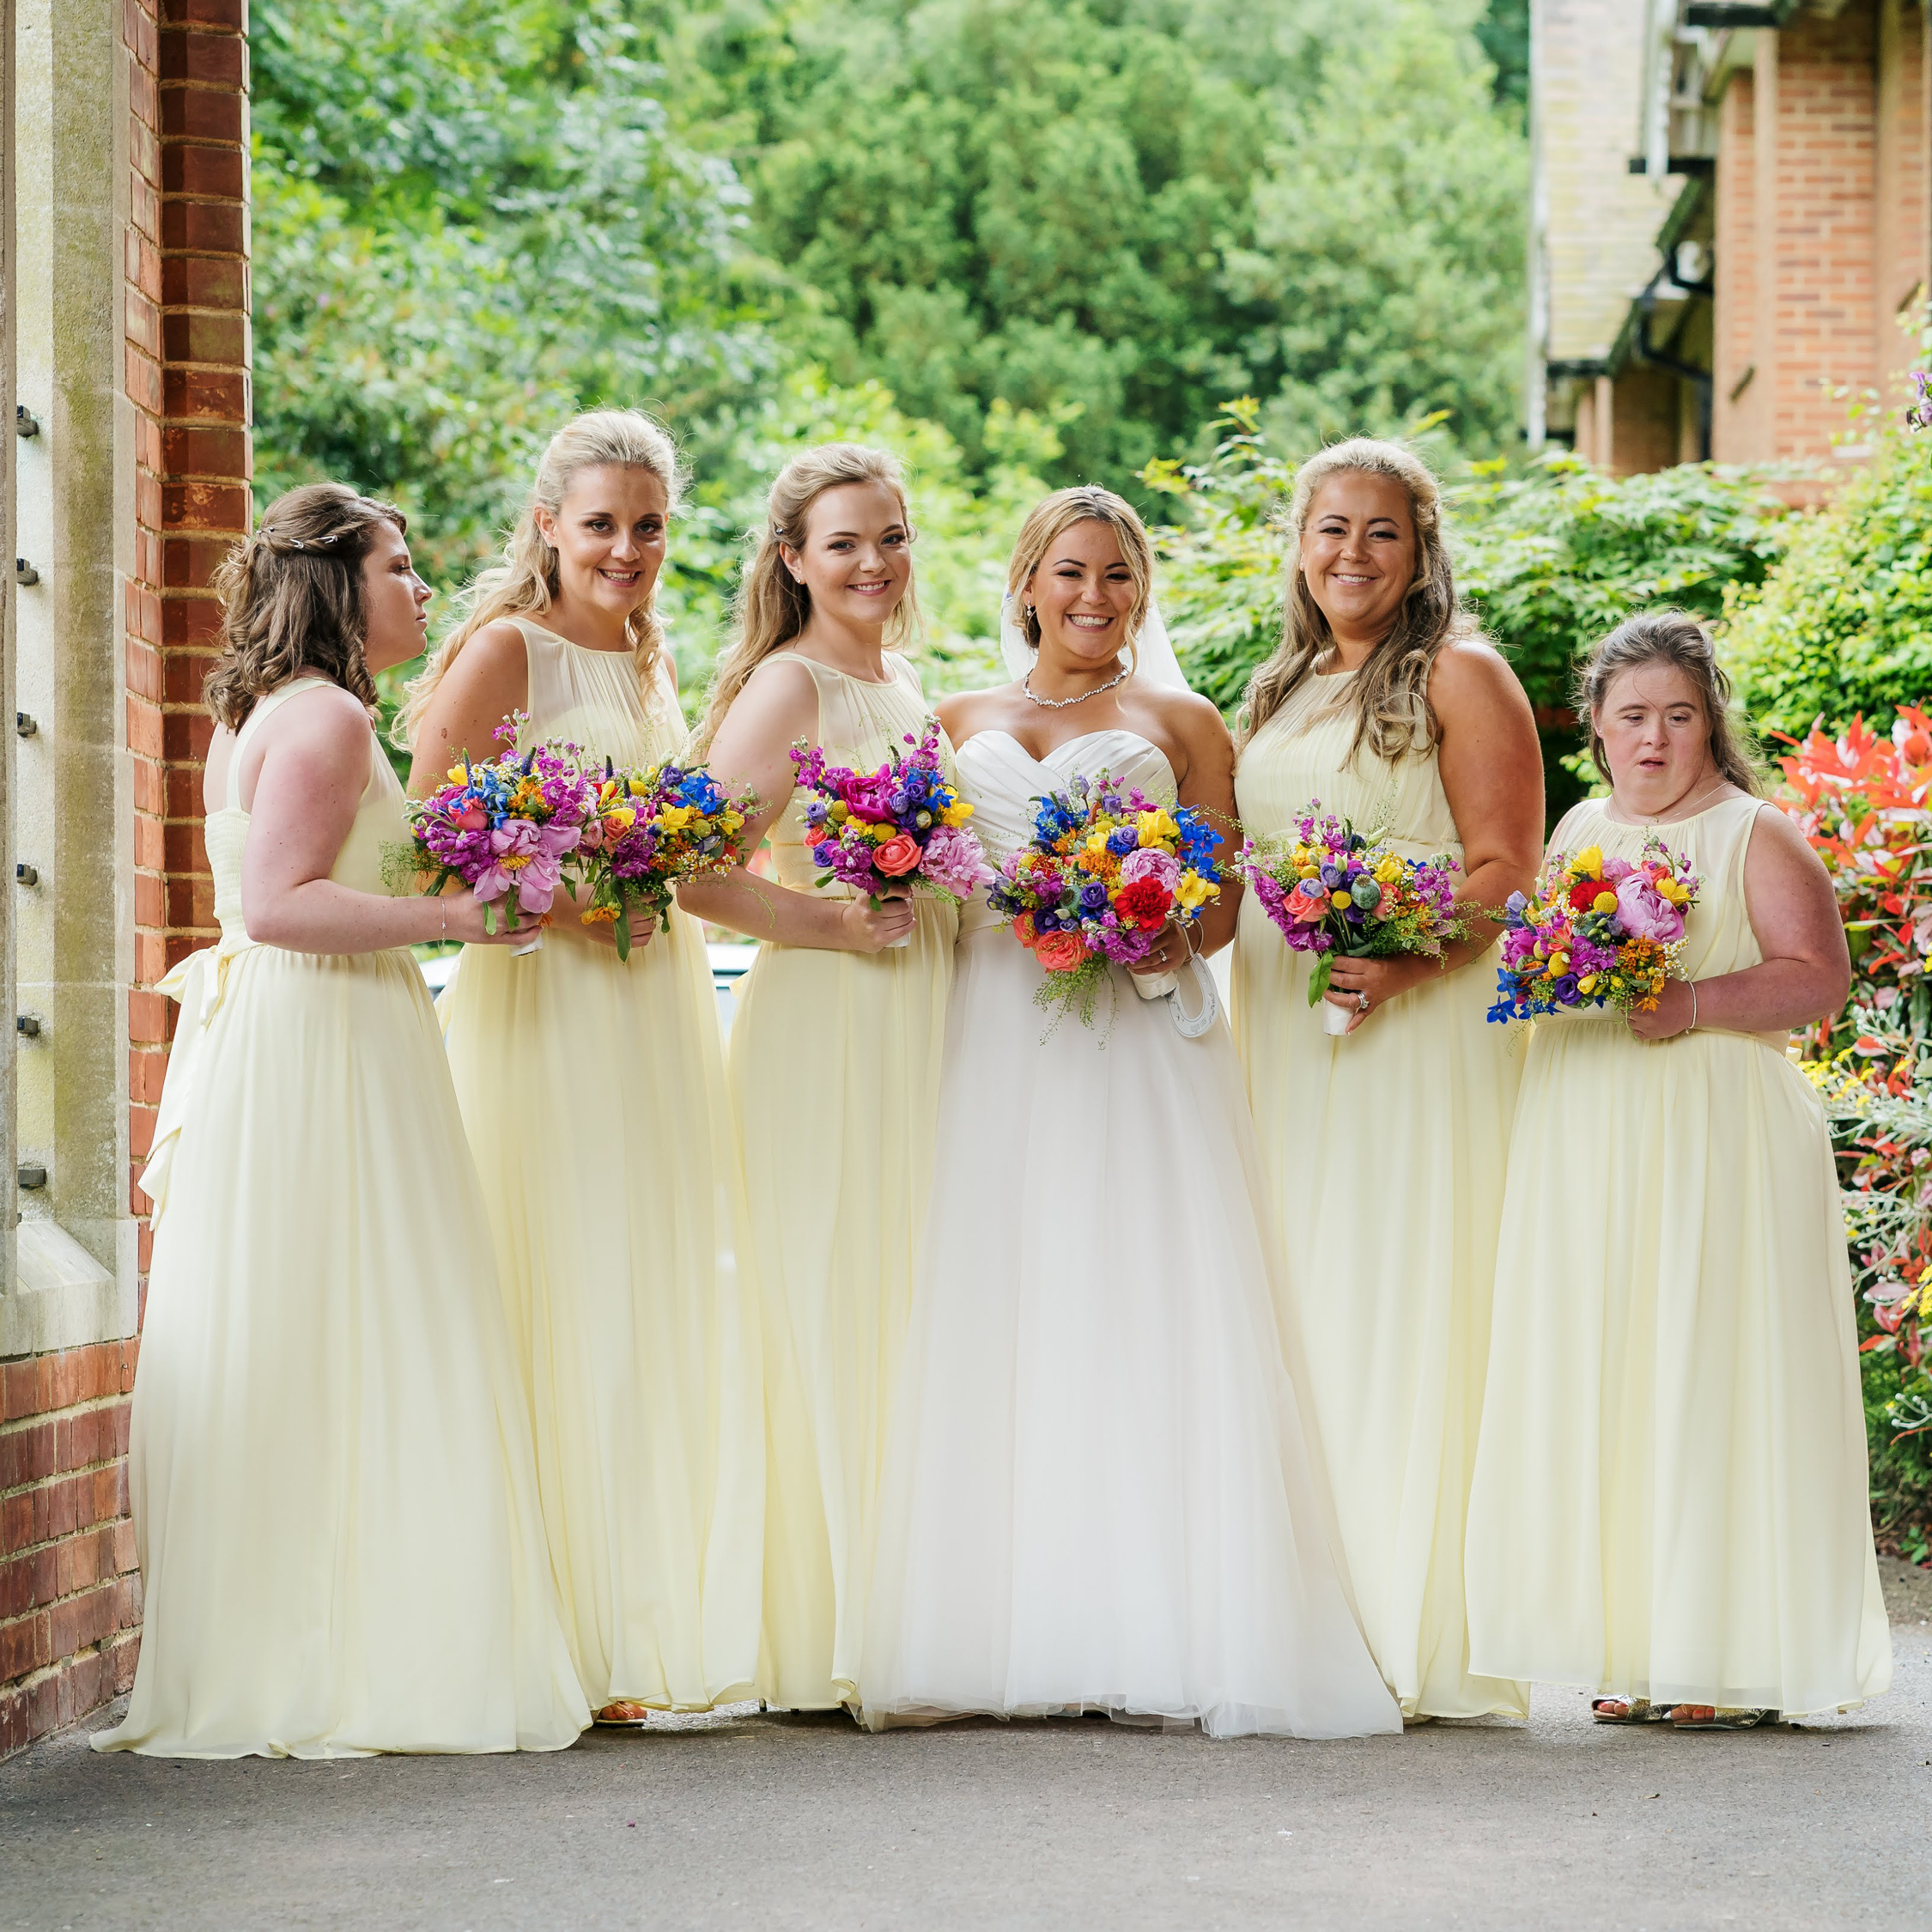 What does a bridesmaid do, bridal party, wedding party jobs